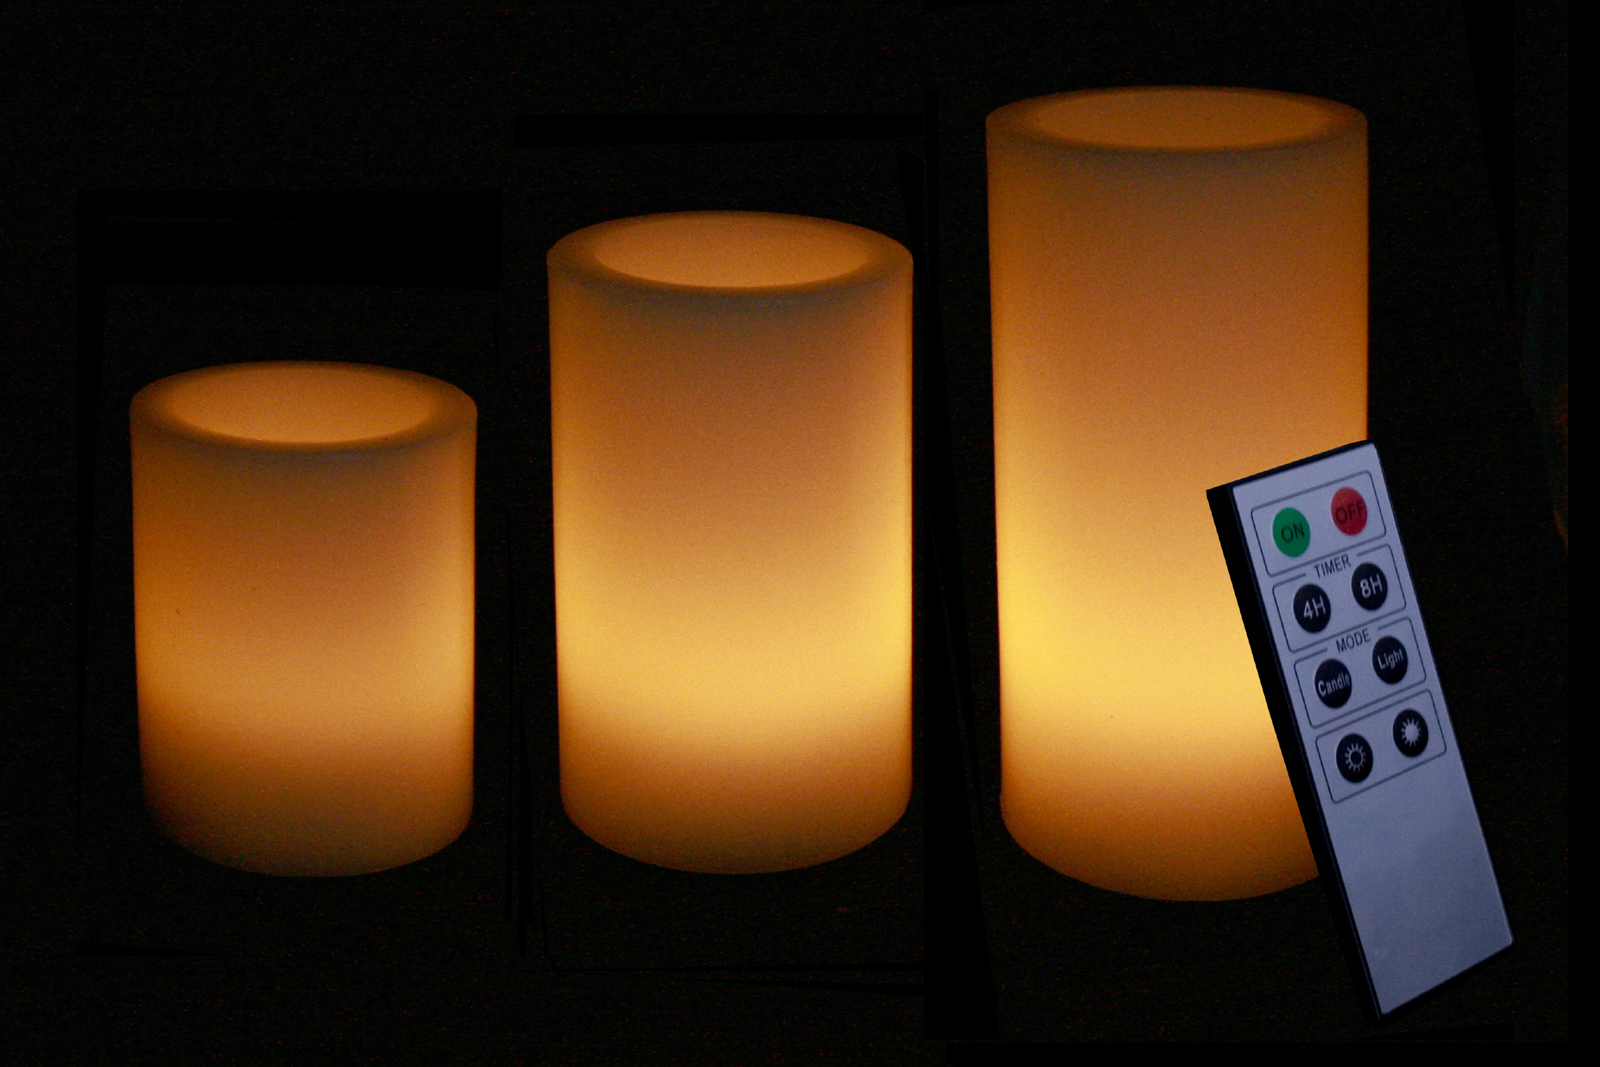 Round Smooth Edge Remote Controlled Flameless Wax Pillar Candles - Set of 3